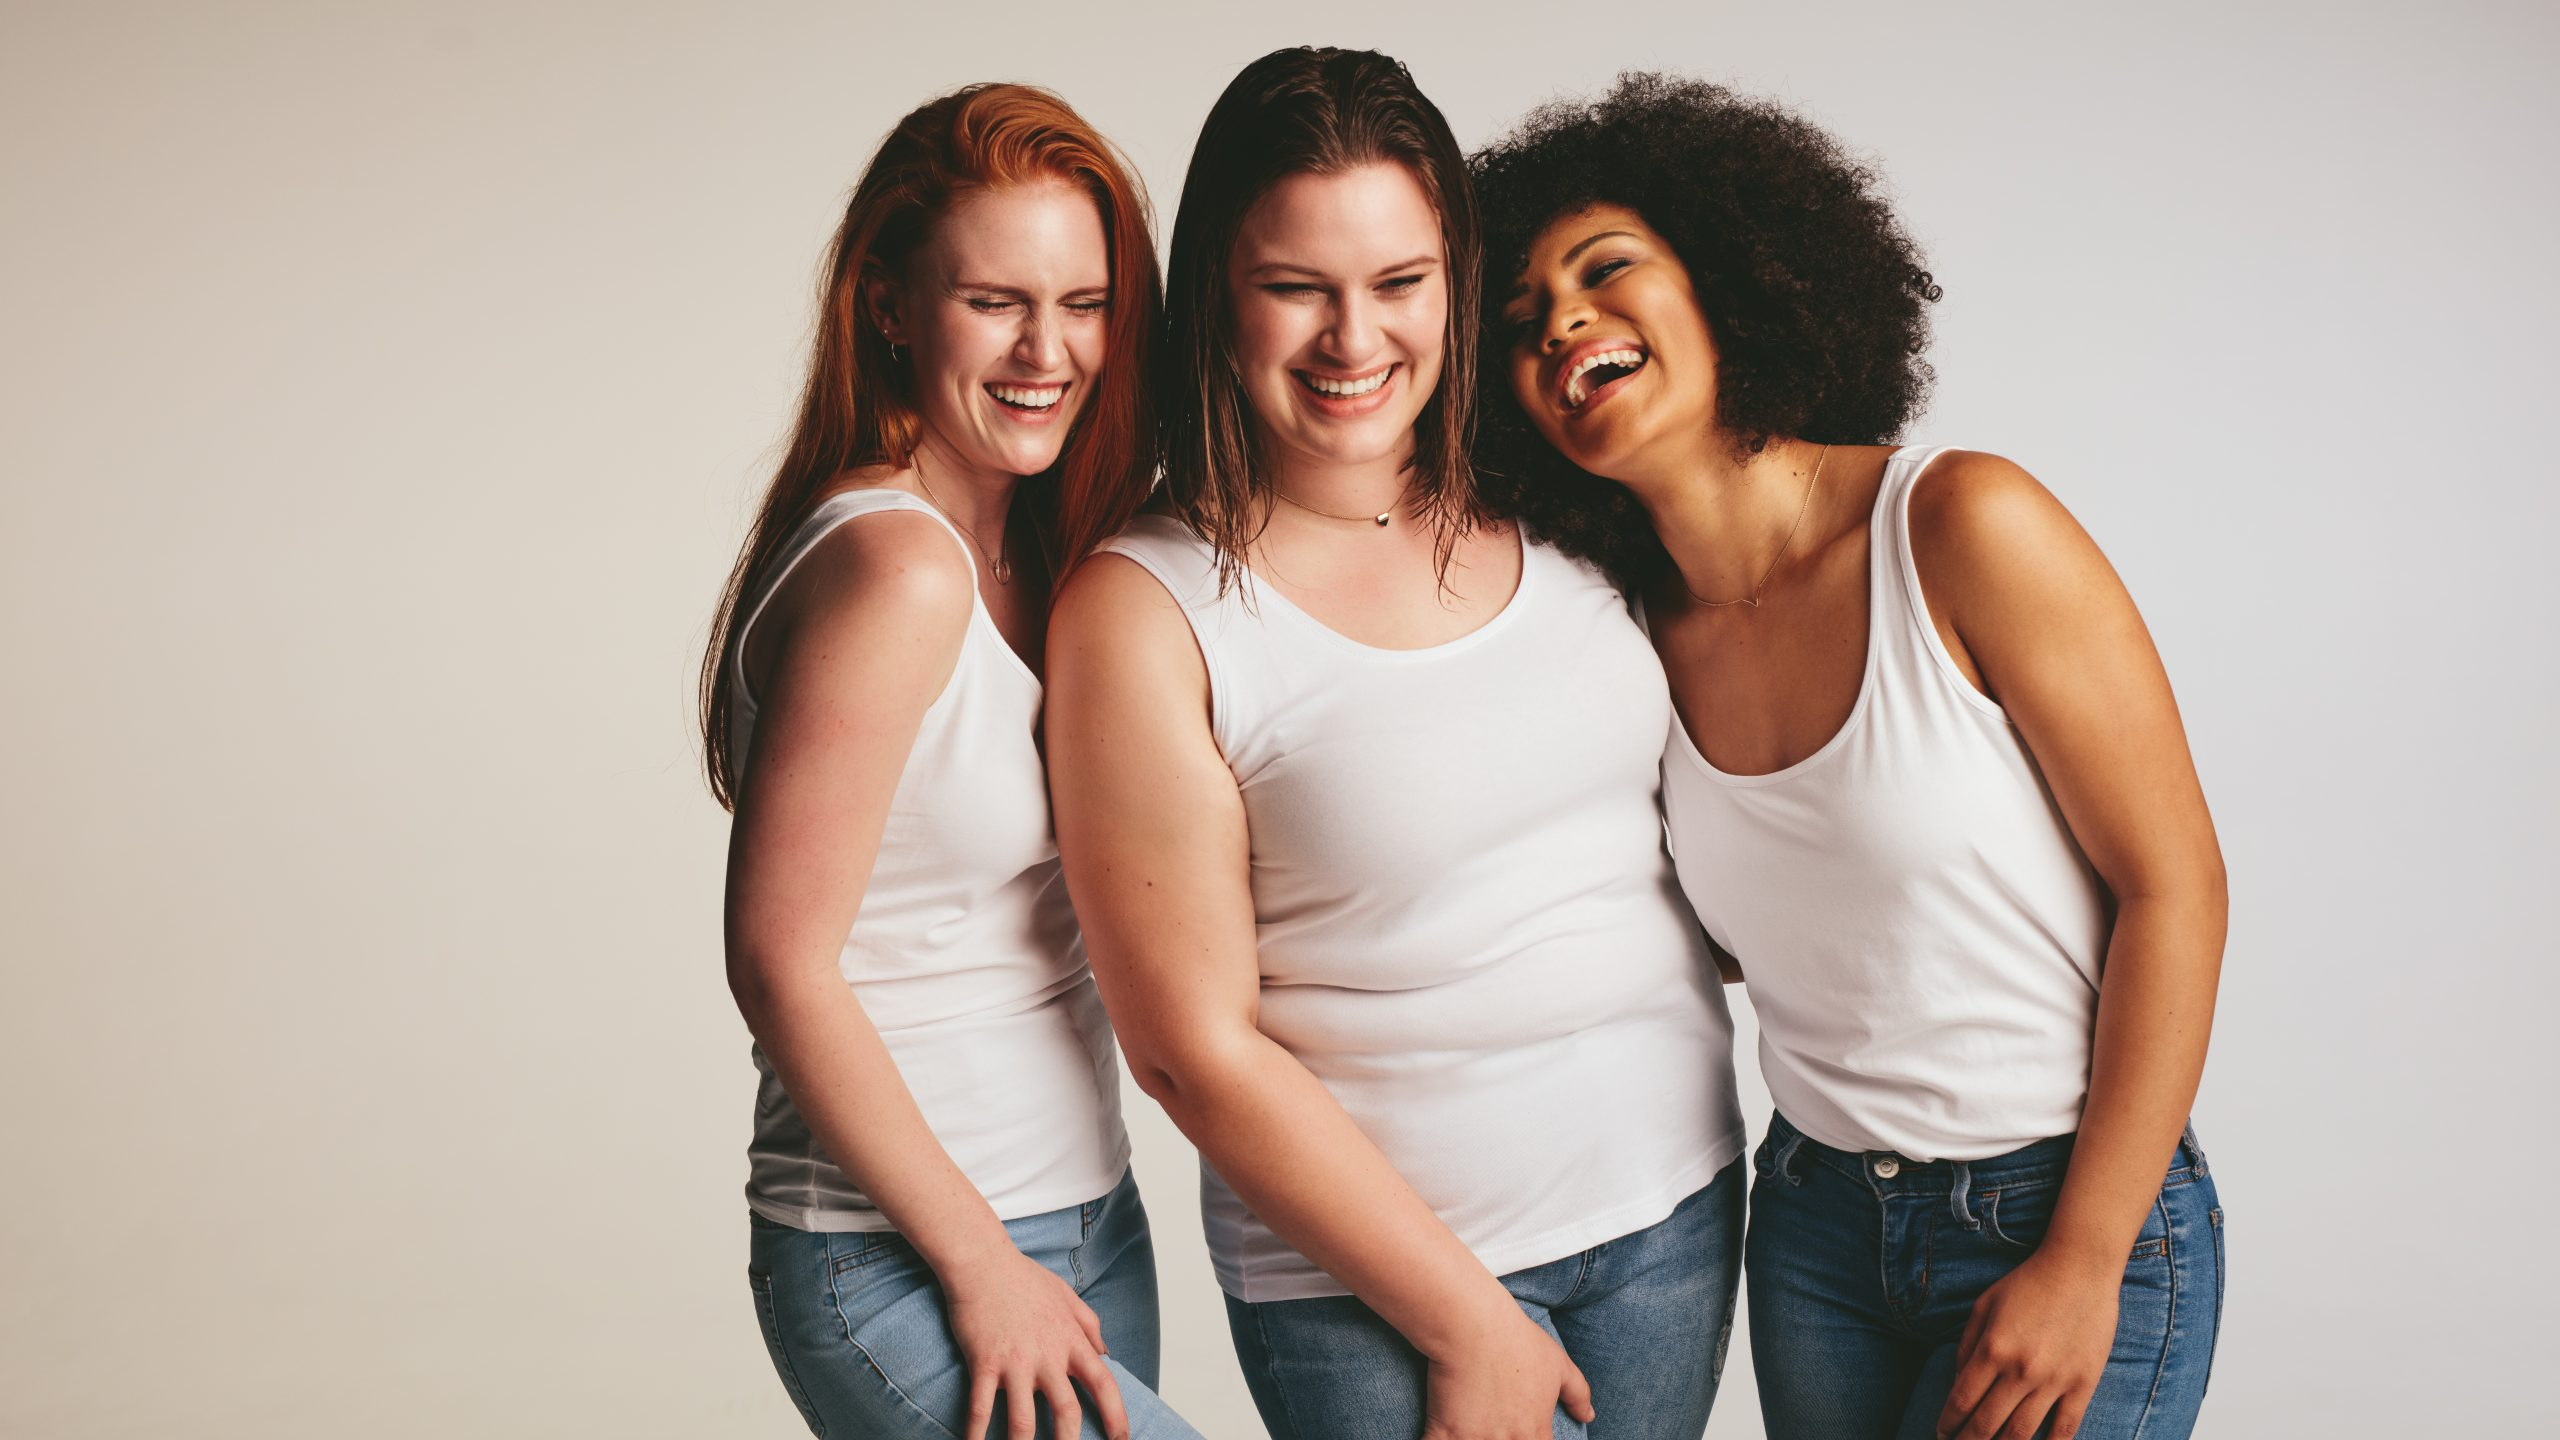 Three women of different races laughing together in white tshirt and jeans